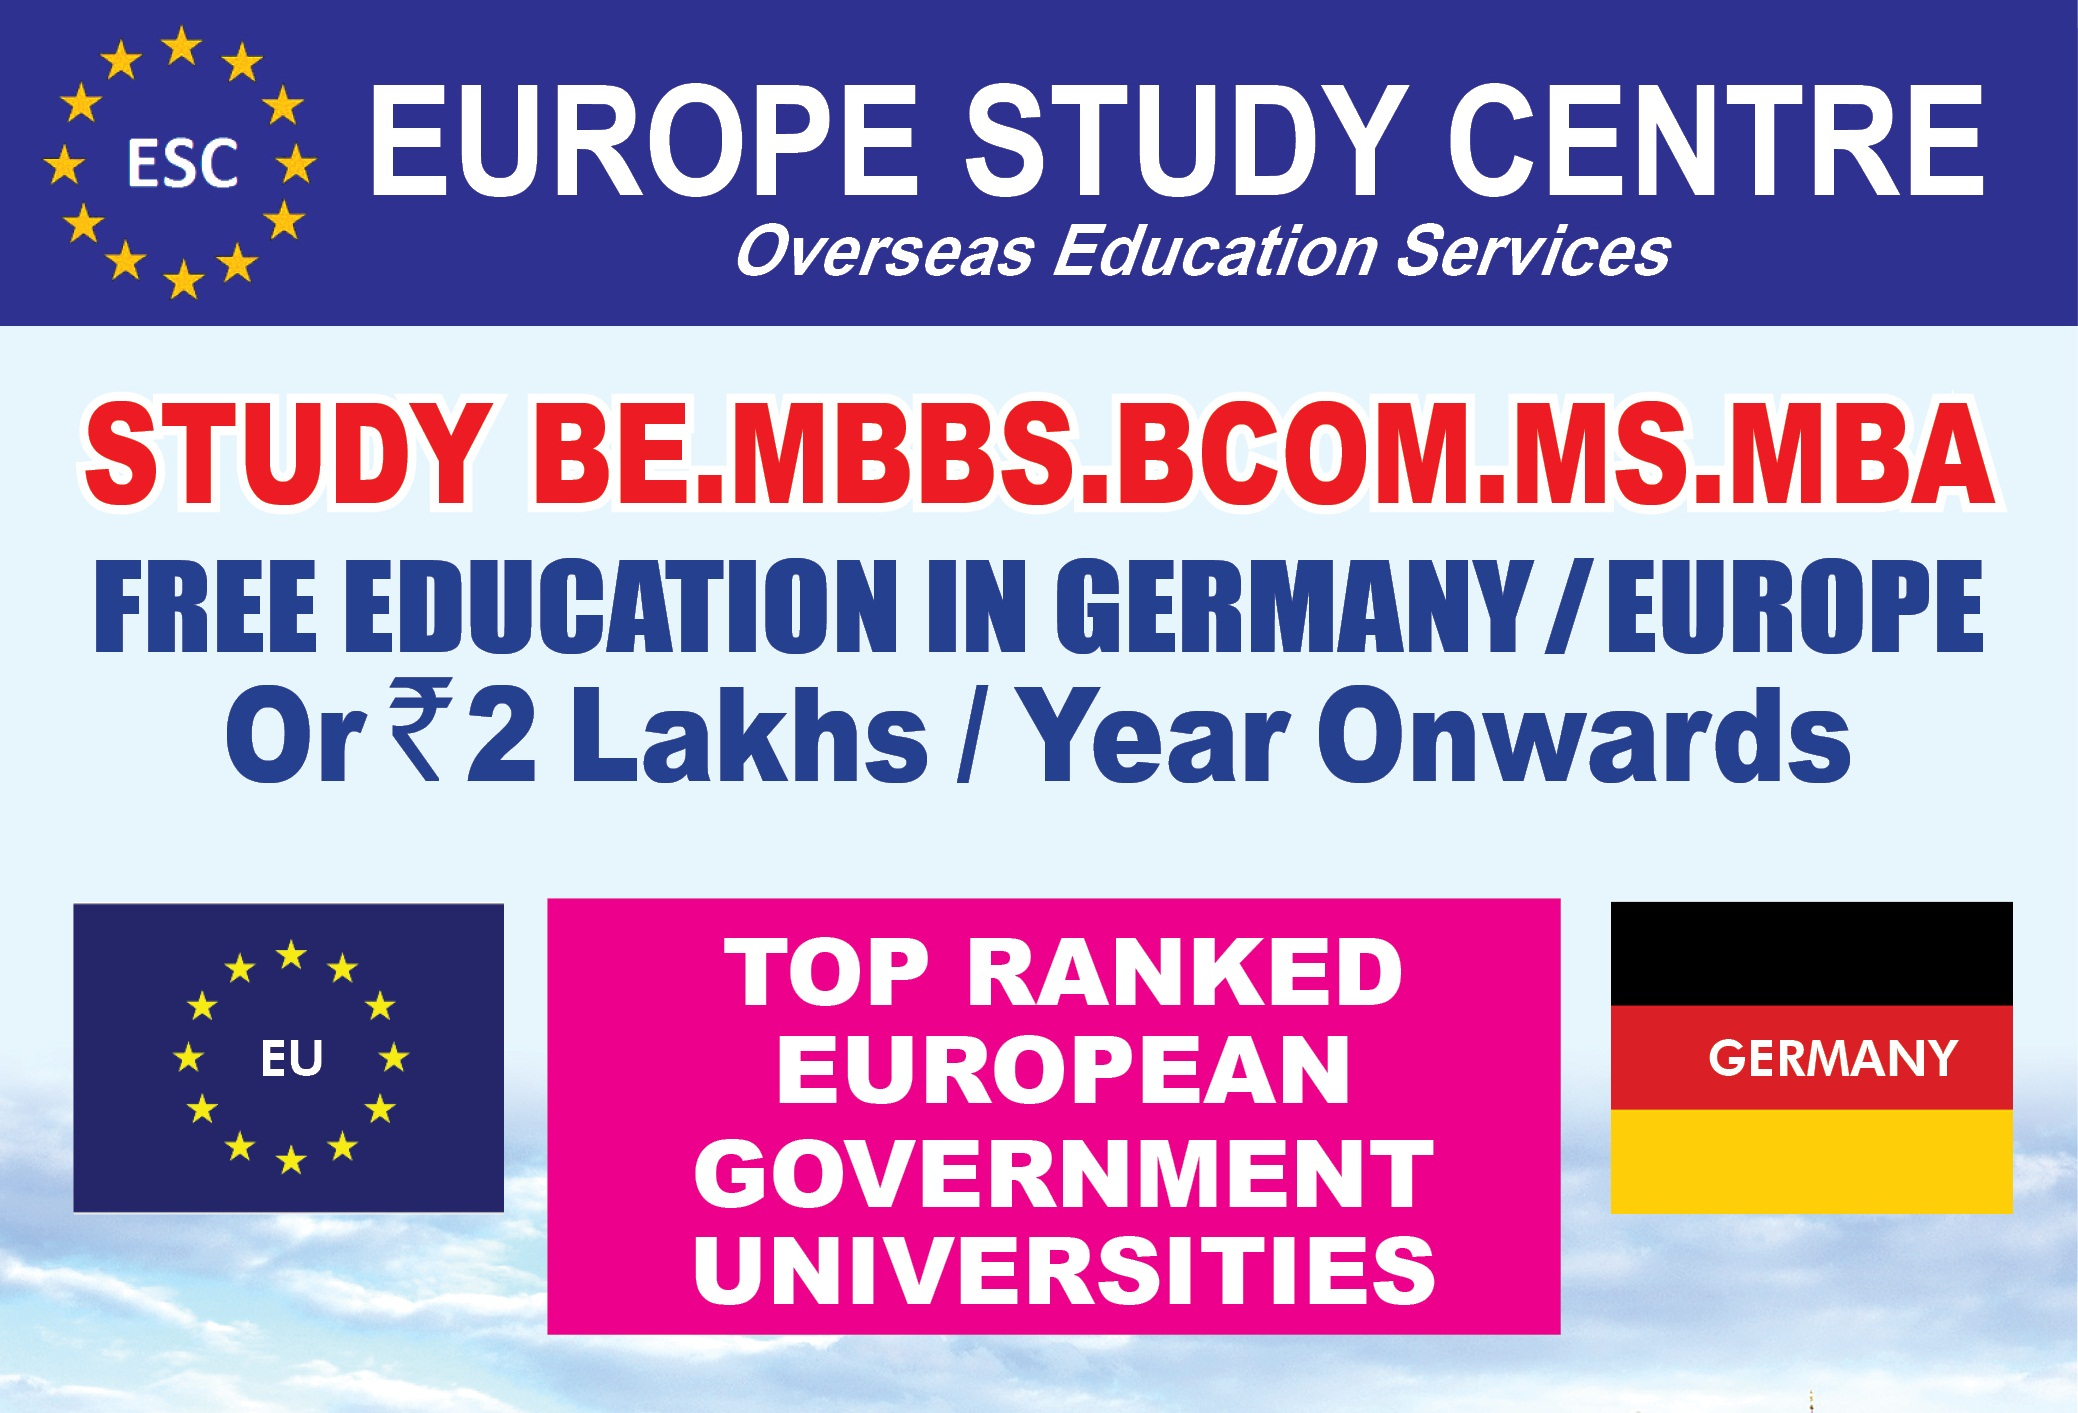 Europe Study Centre - Santacruz - Home | Facebook